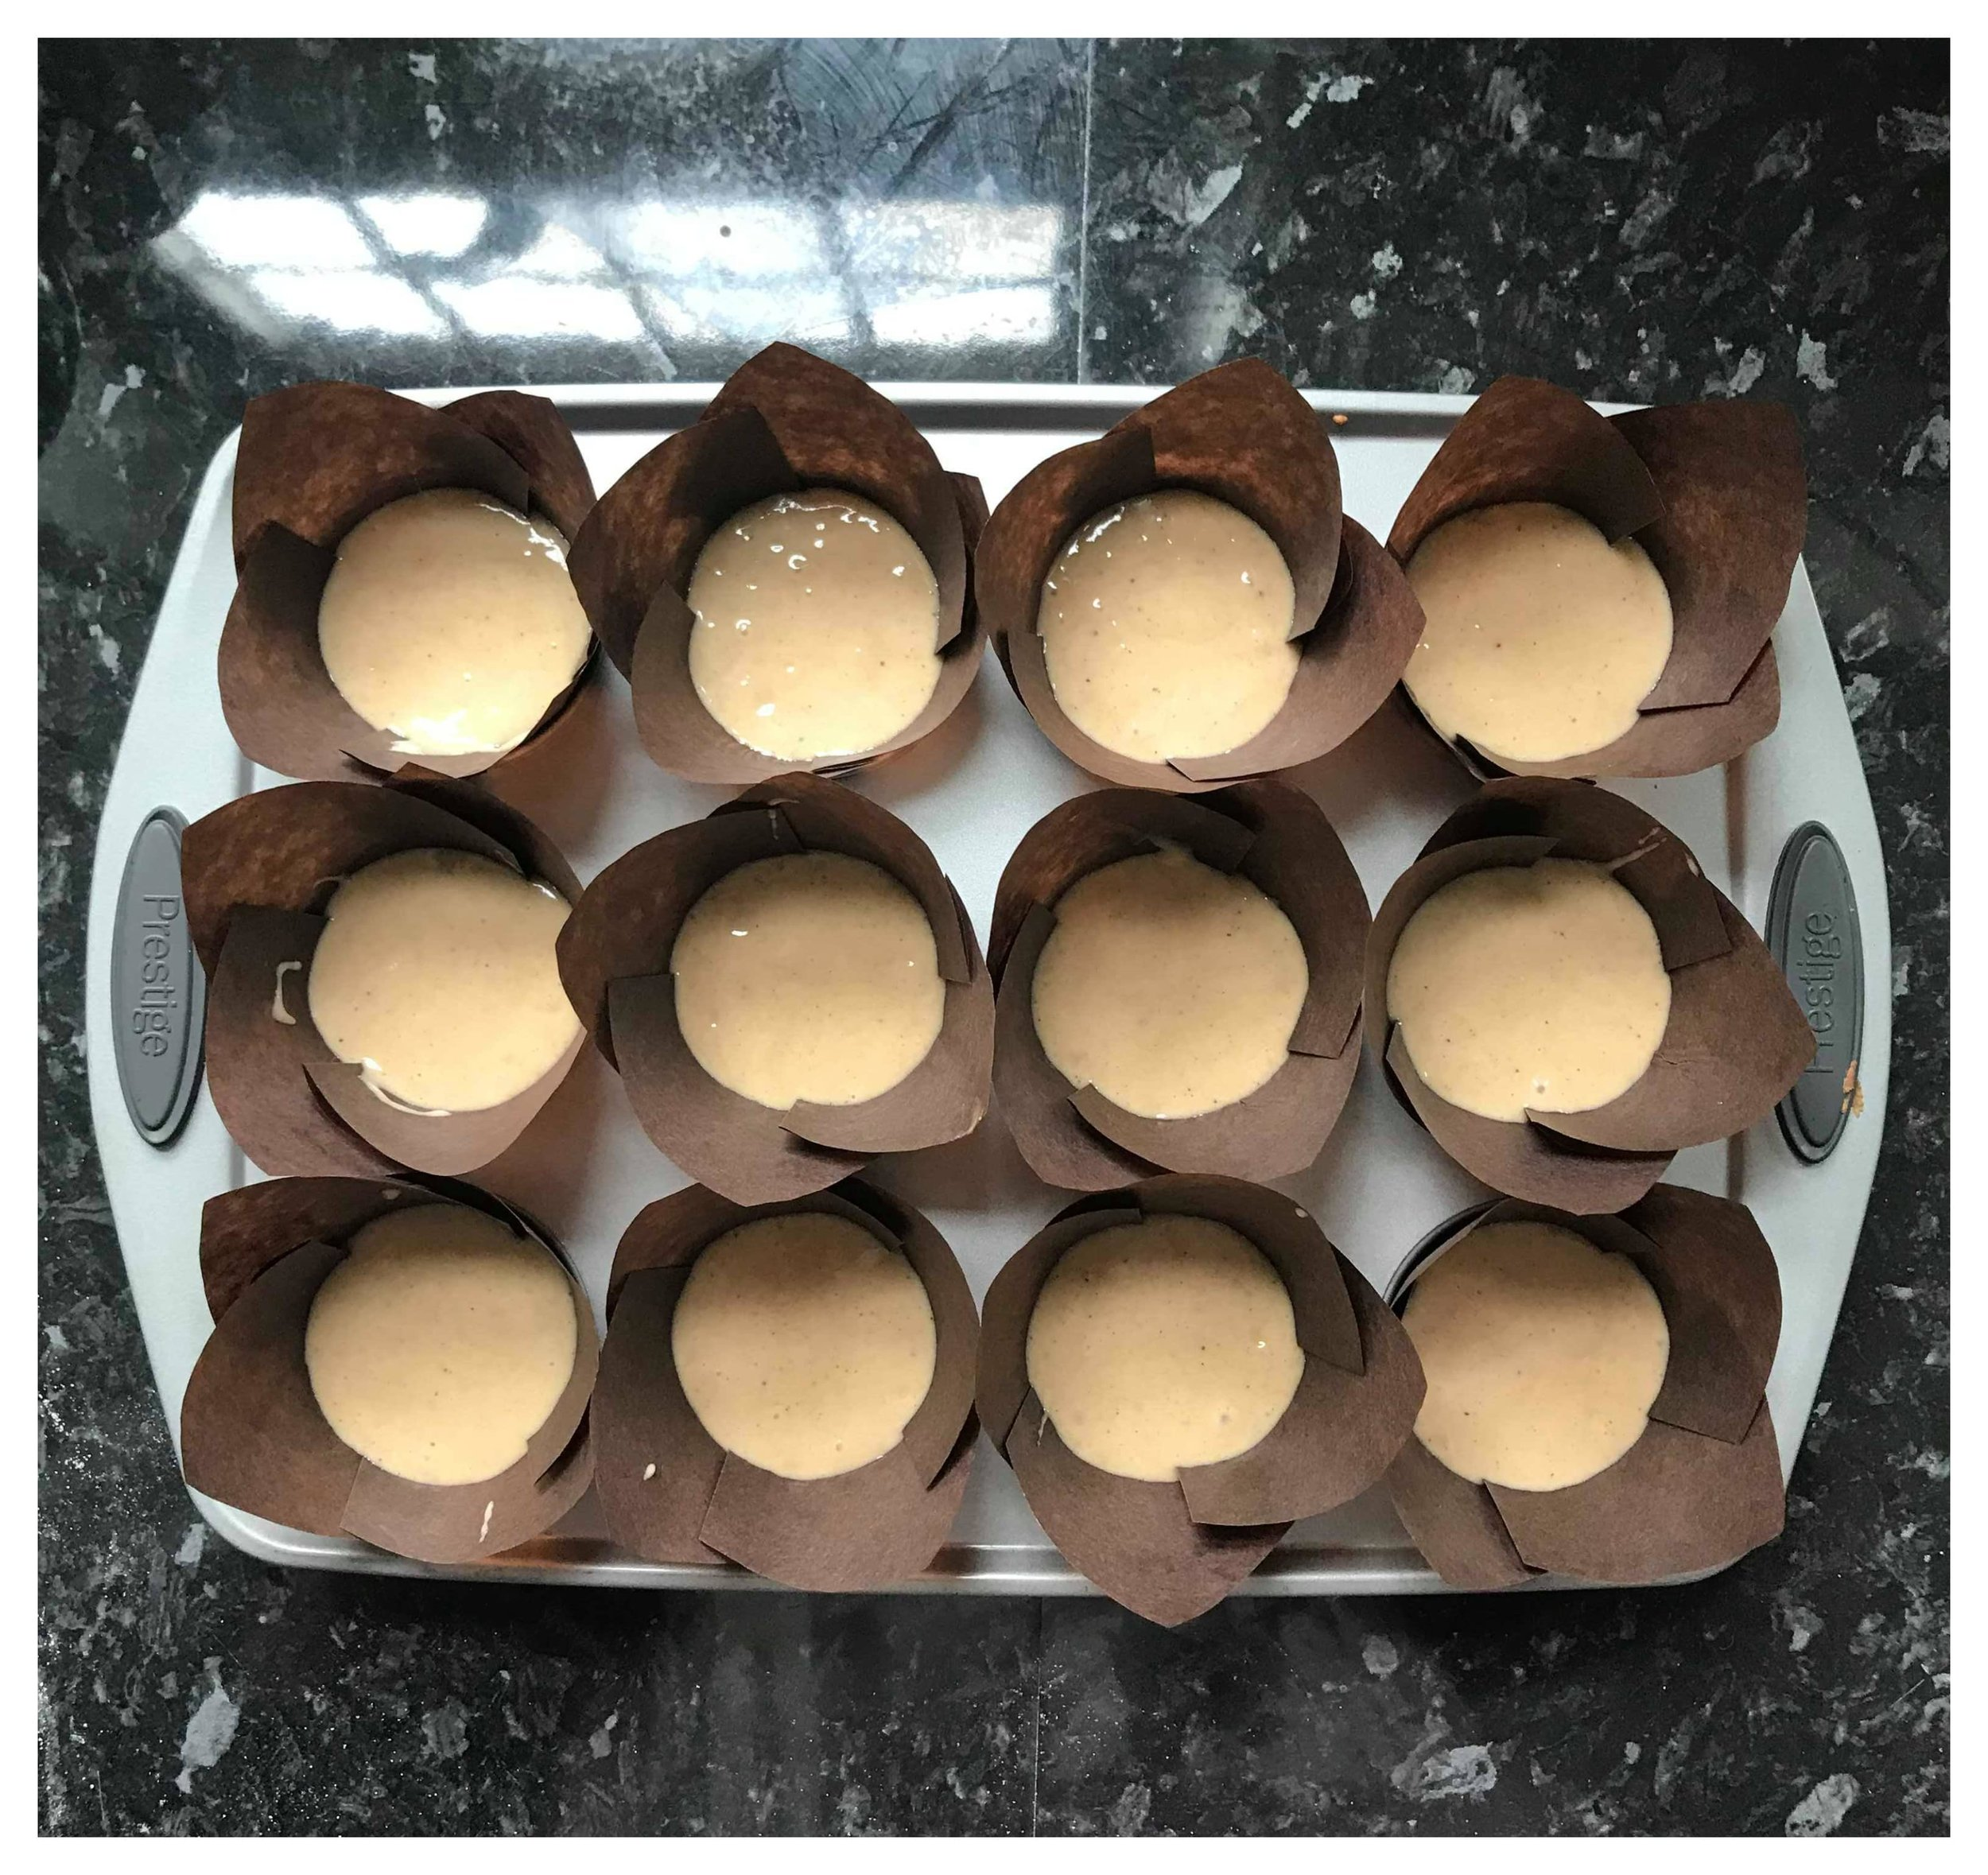 Bake the Spiced Muffins for 20-25 minutes.